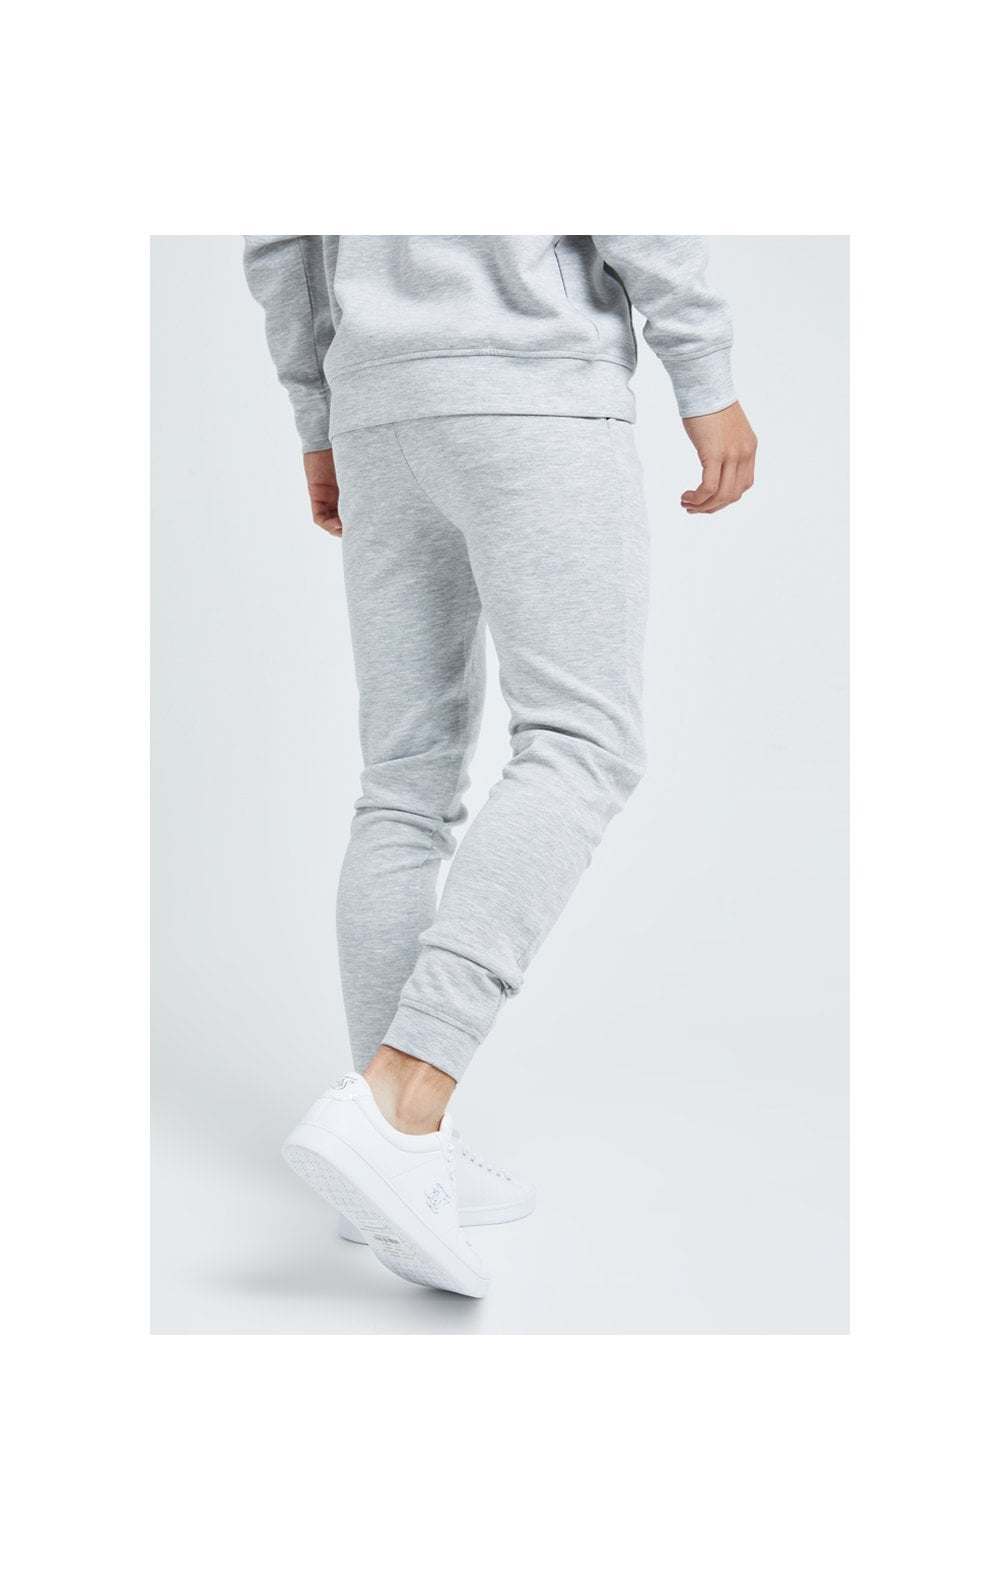 Illusive London Dual Joggers - Grey (4)